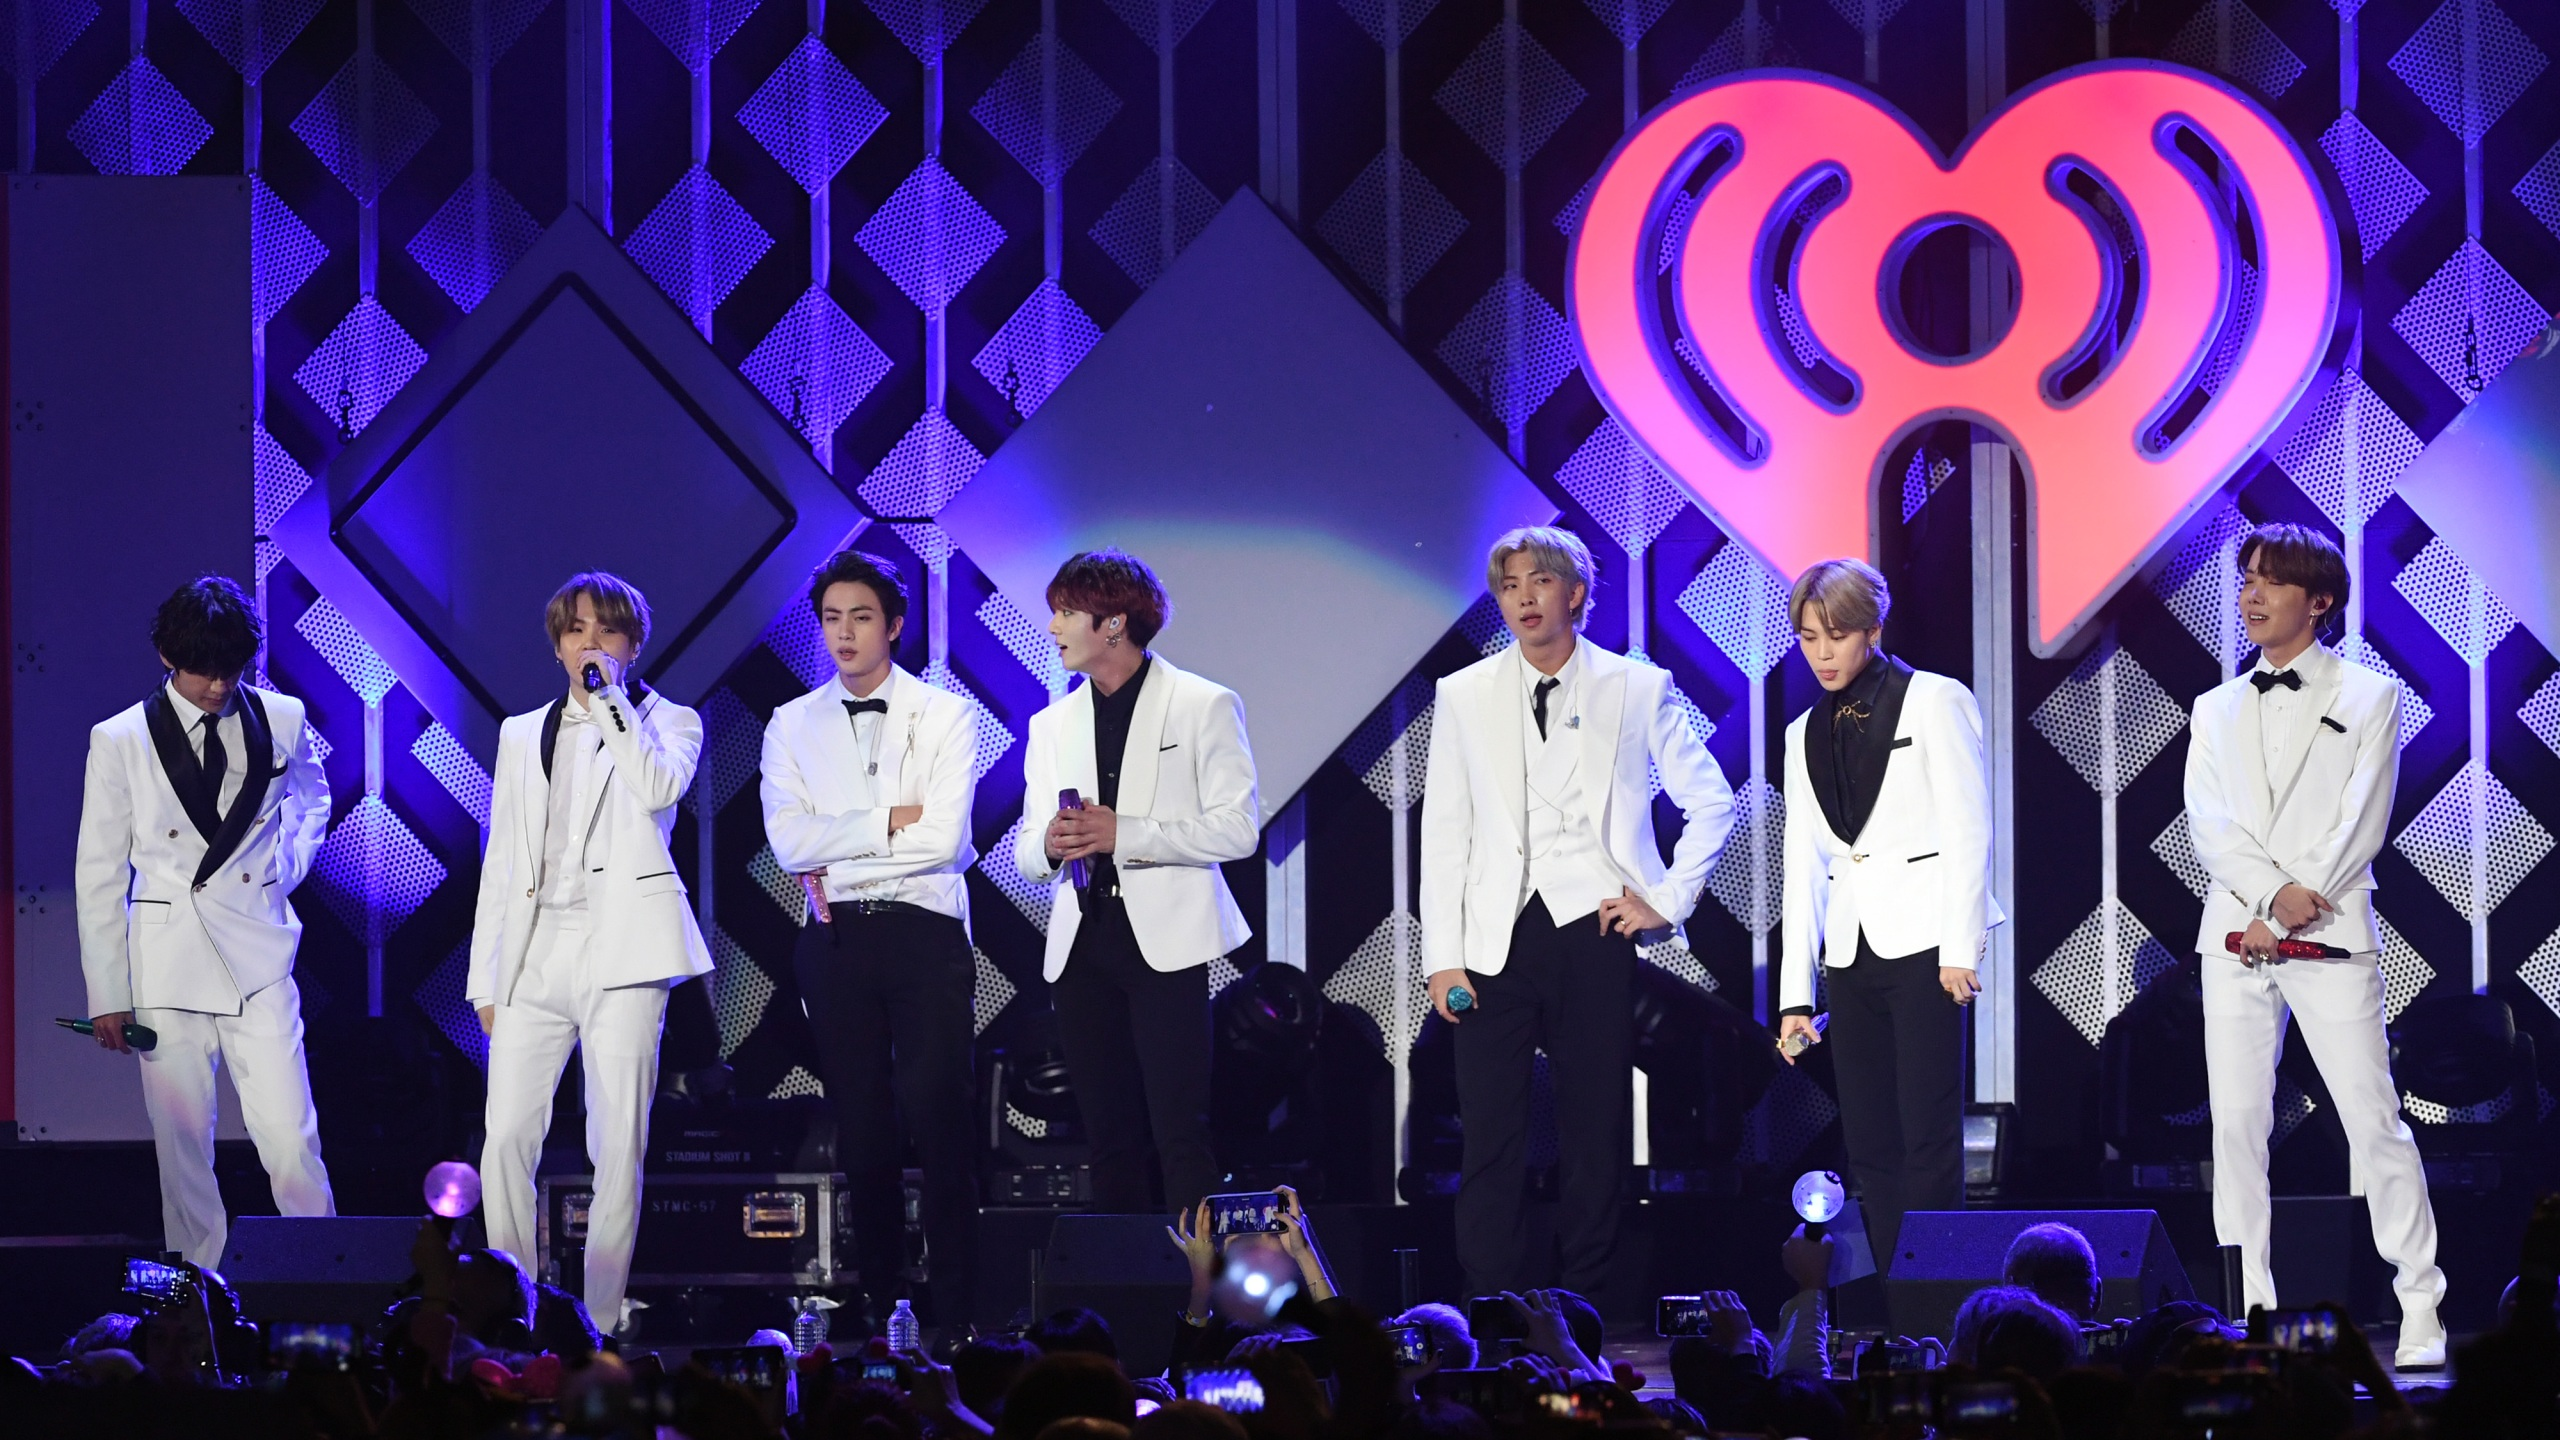 From left: V, Suga, Jin, Jungkook, RM, Jimin, and J-Hope of BTS perform onstage during 102.7 KIIS FM's Jingle Ball 2019 at the Forum on Dec. 6, 2019. (Kevin Winter/Getty Images for iHeartMedia)